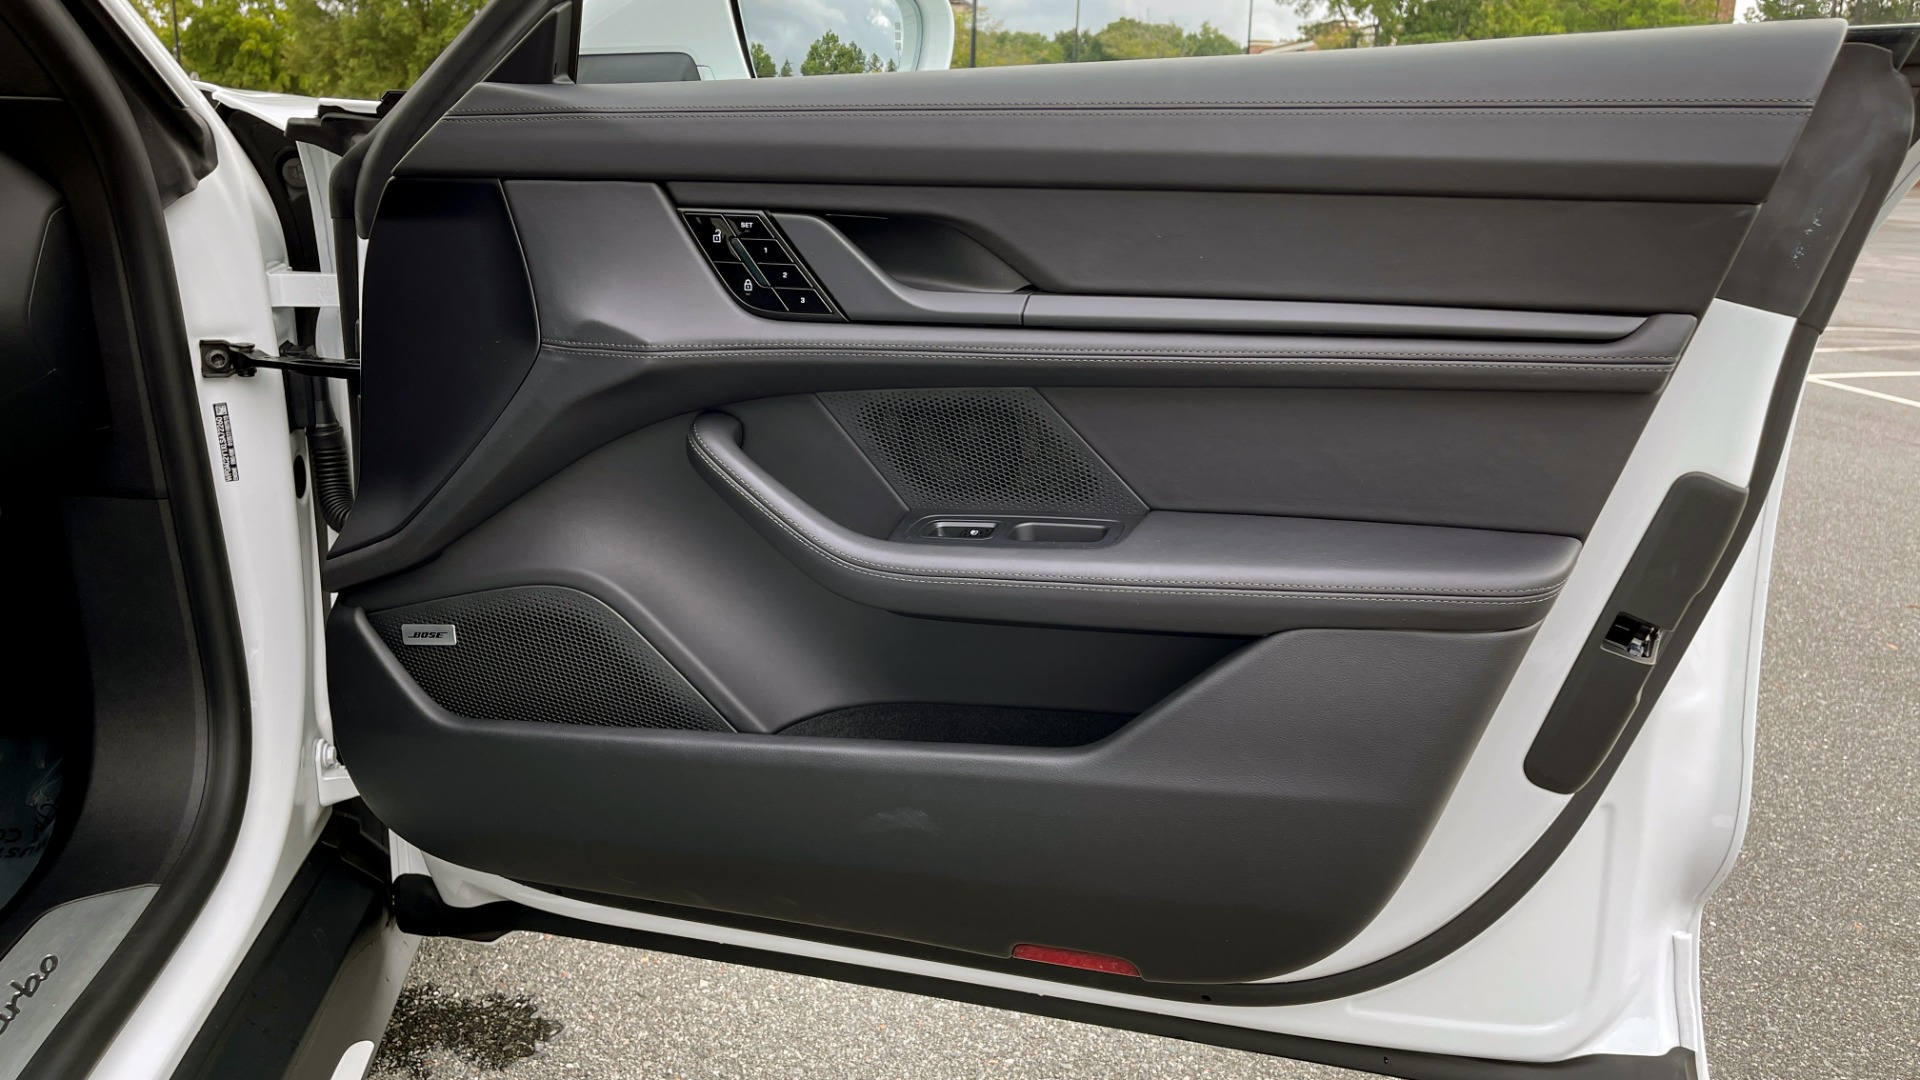 Used 2020 Porsche TAYCAN TURBO SEDAN / AWD / NAV / BOSE / PANO-ROOF / LCA / SURROUND VIEW for sale $162,995 at Formula Imports in Charlotte NC 28227 67